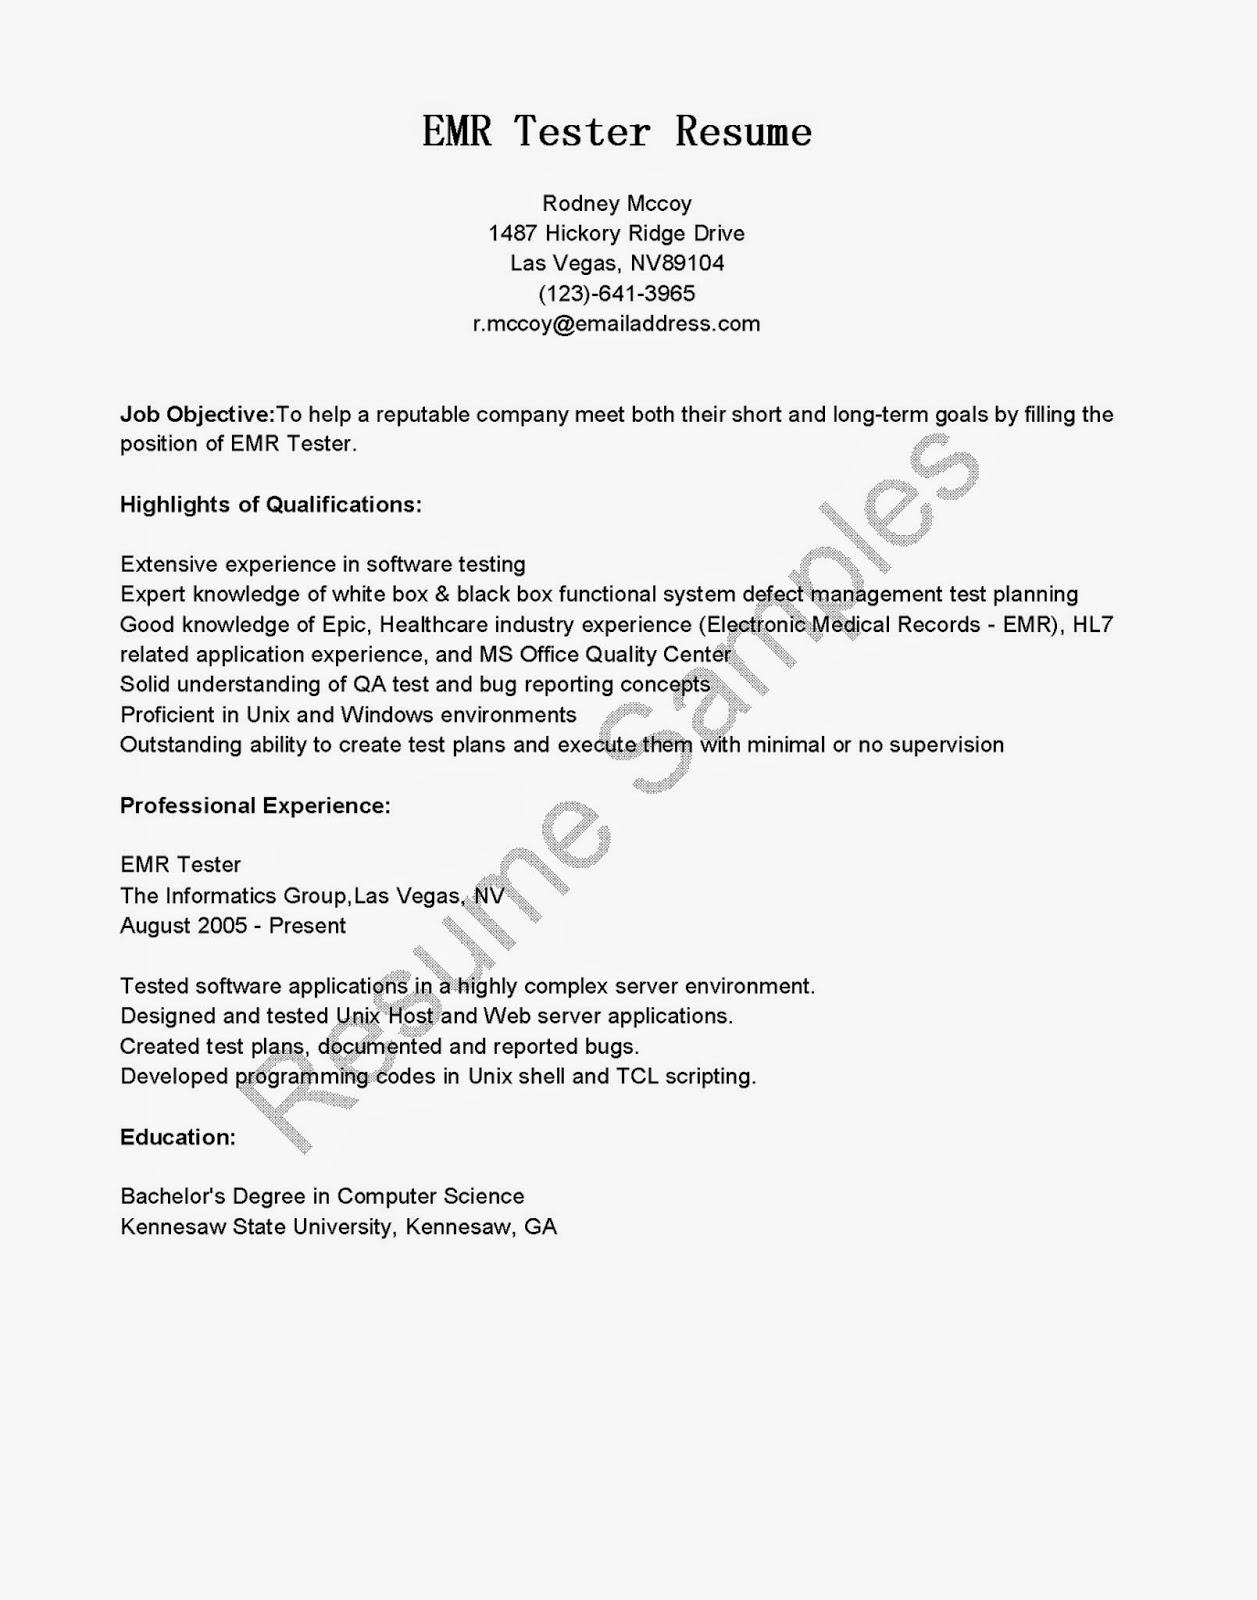 Unix Project Manager Resume Example Good Resume Template Example Good Resume  Template  How To Make A Good Resume With Little Experience